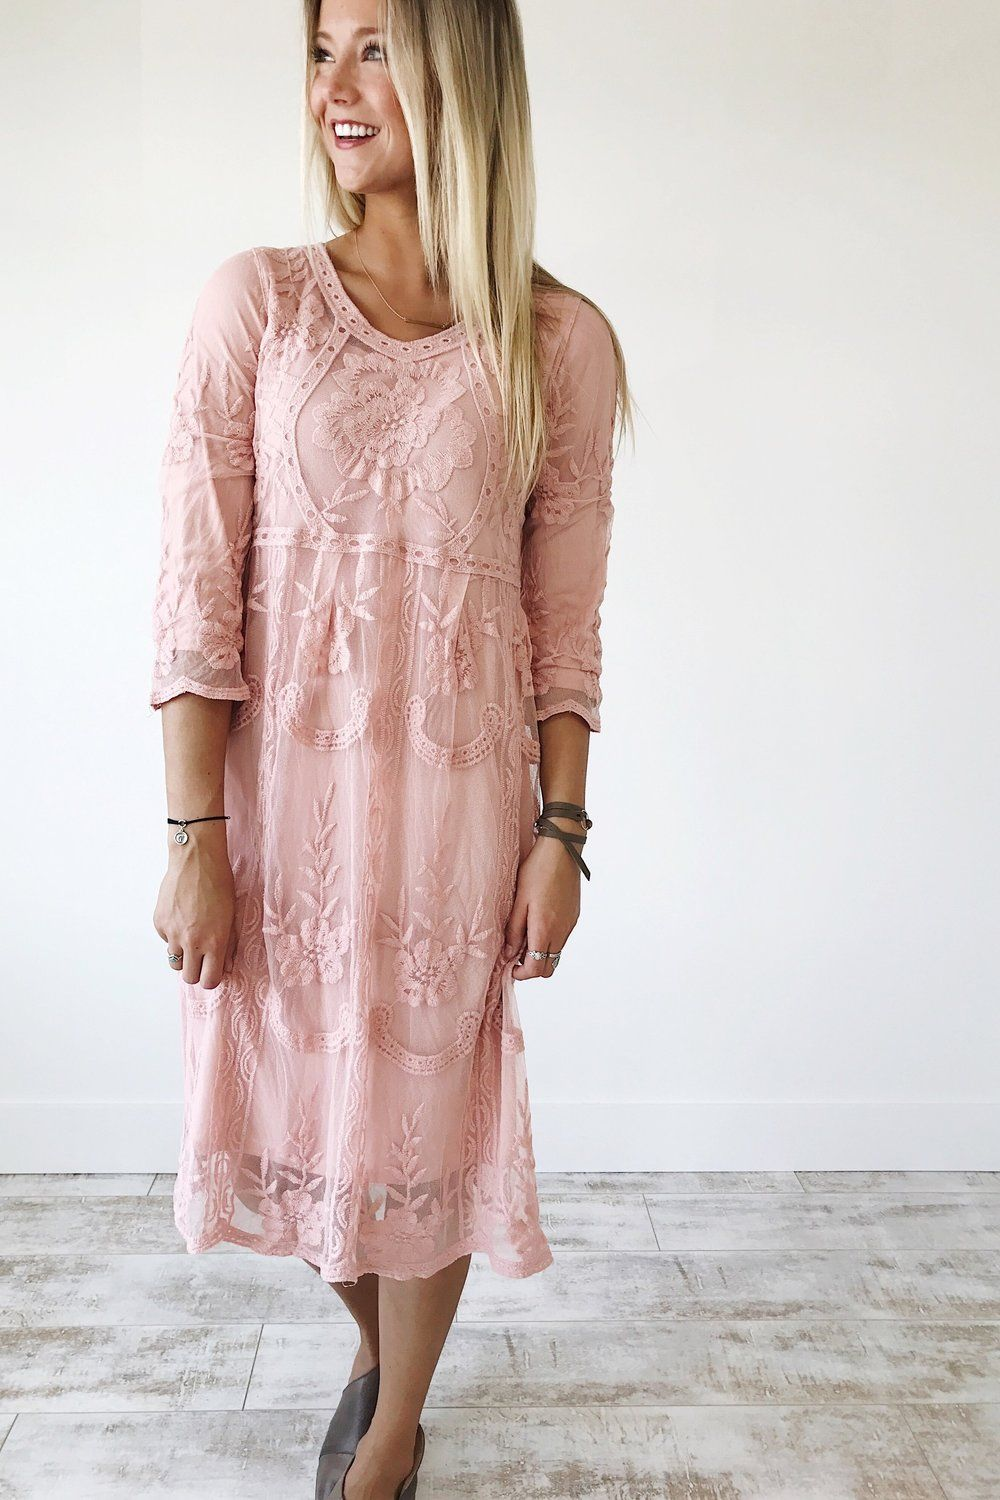 Vintage Lace Dress | ROOLEE | OohLaLa. | Pinterest